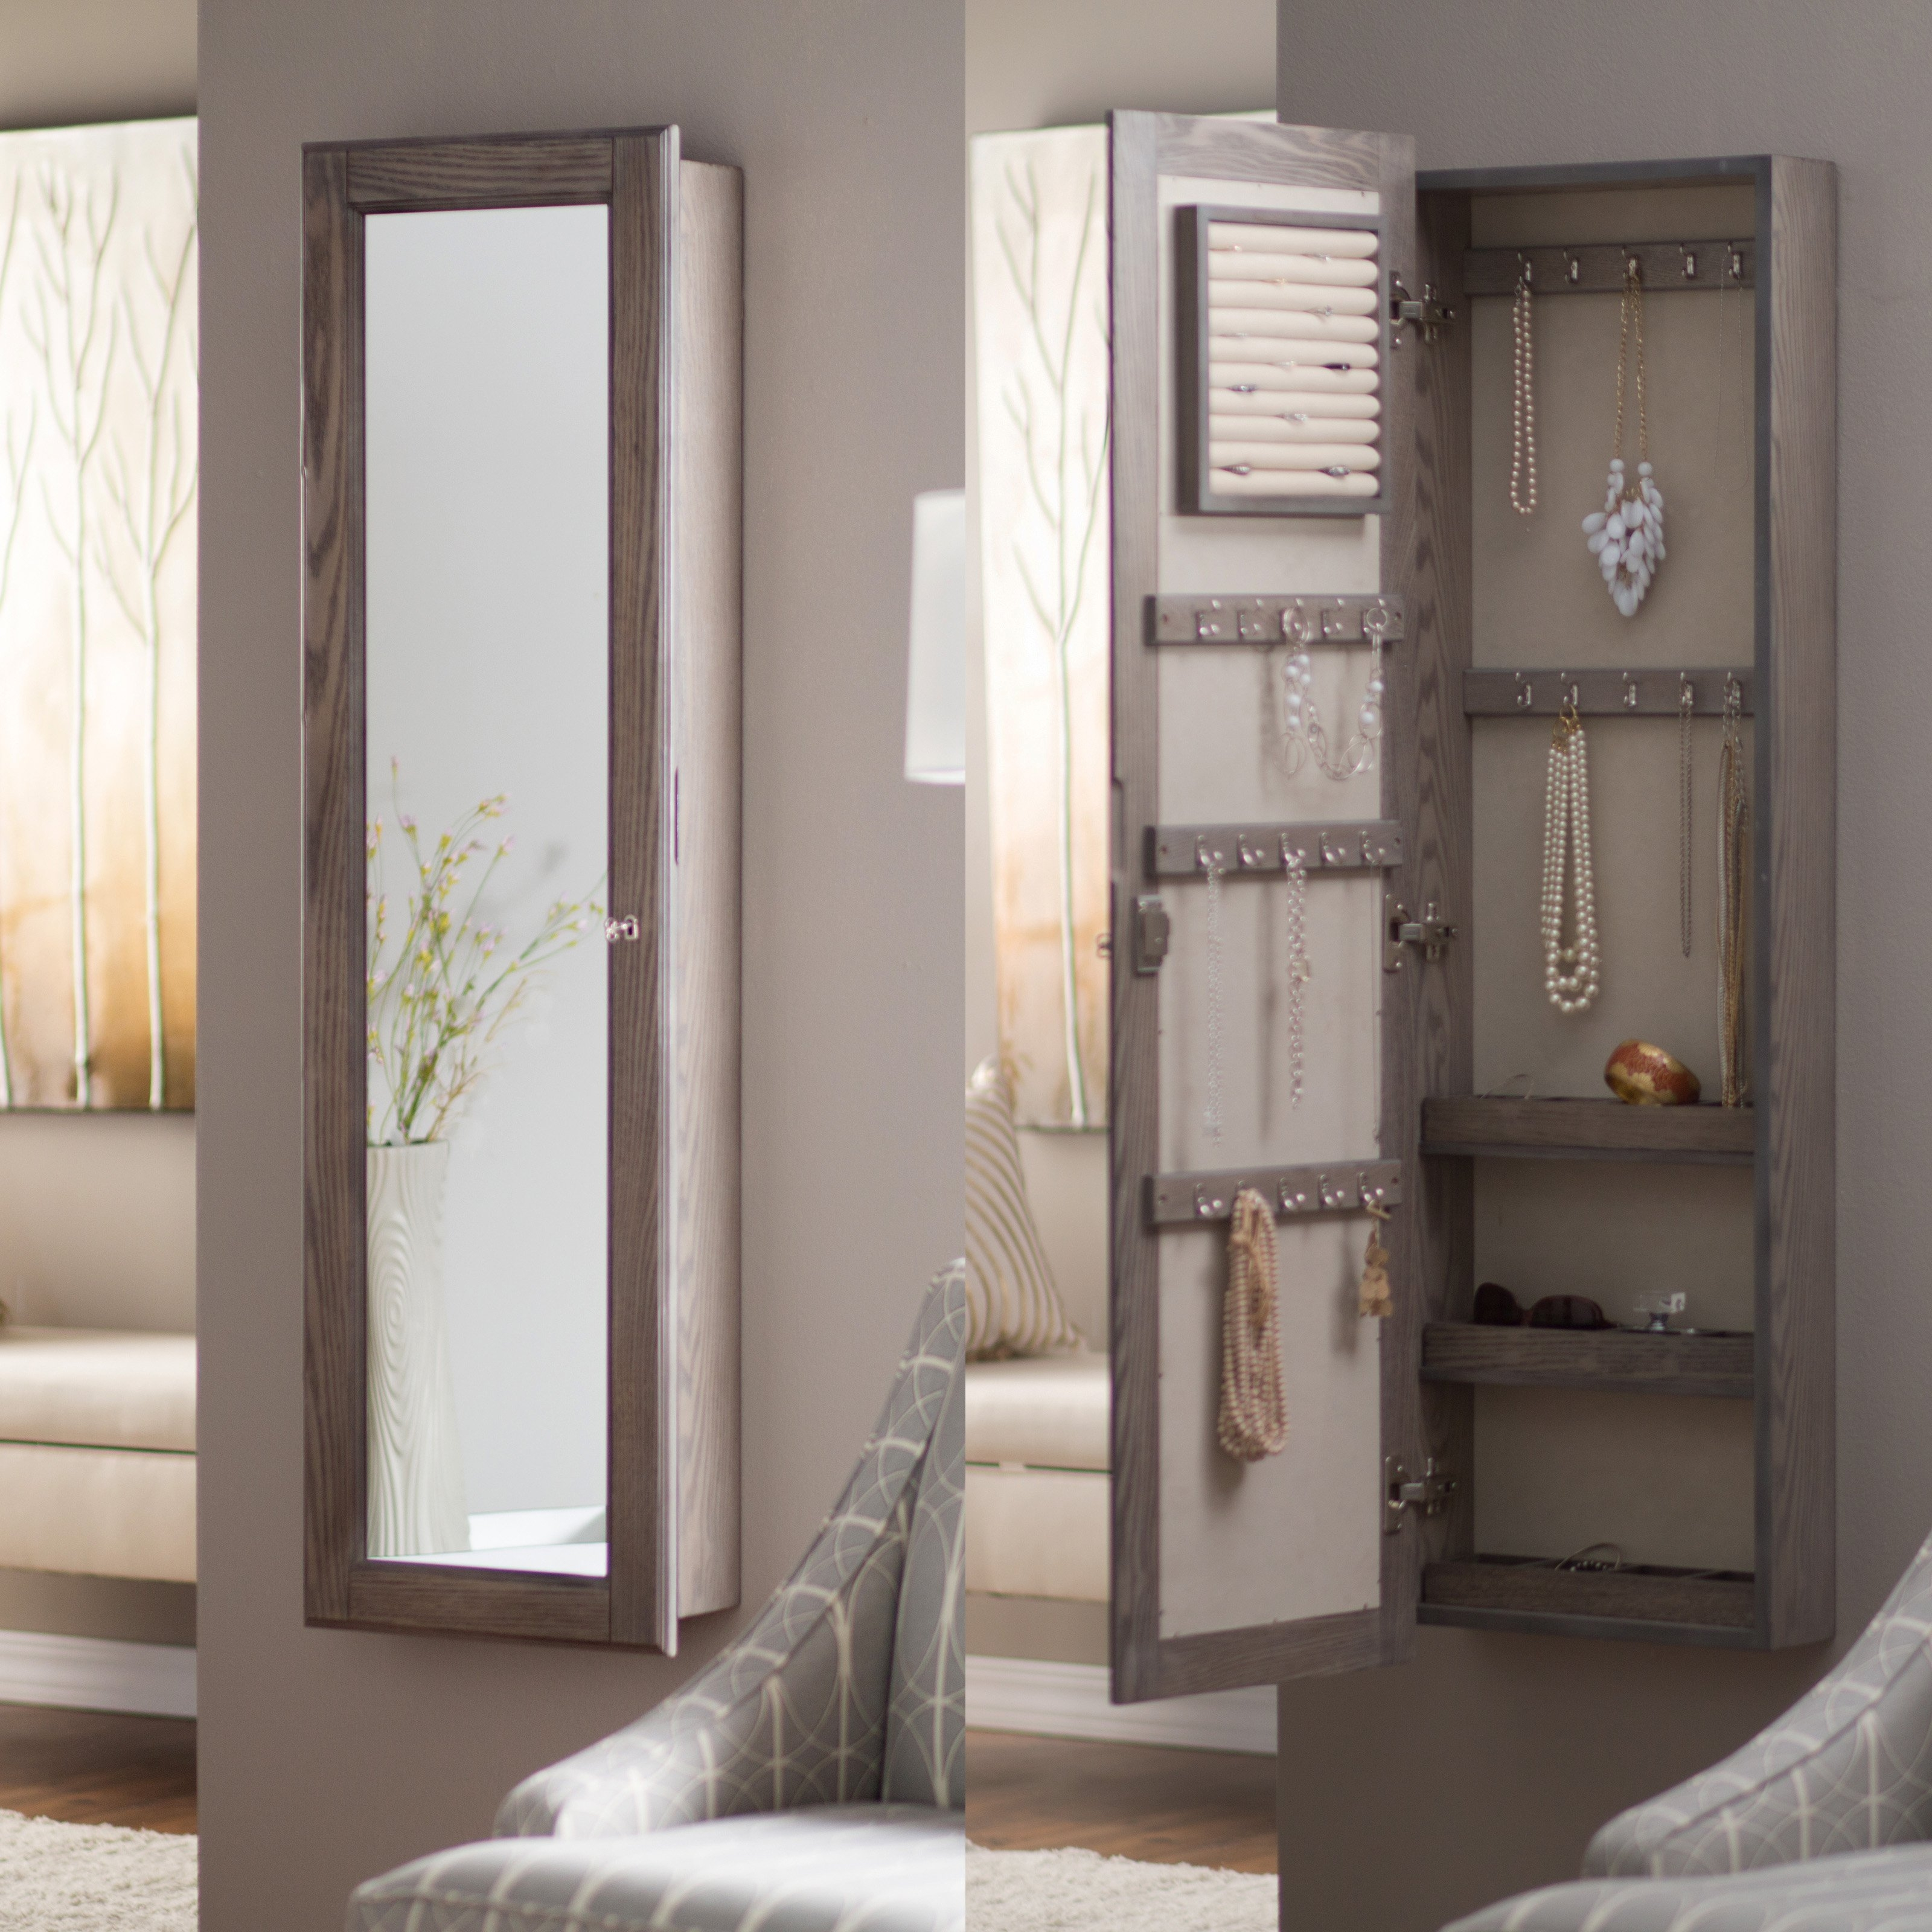 Permalink to Mirrored Jewelry Cabinet Wall Mount